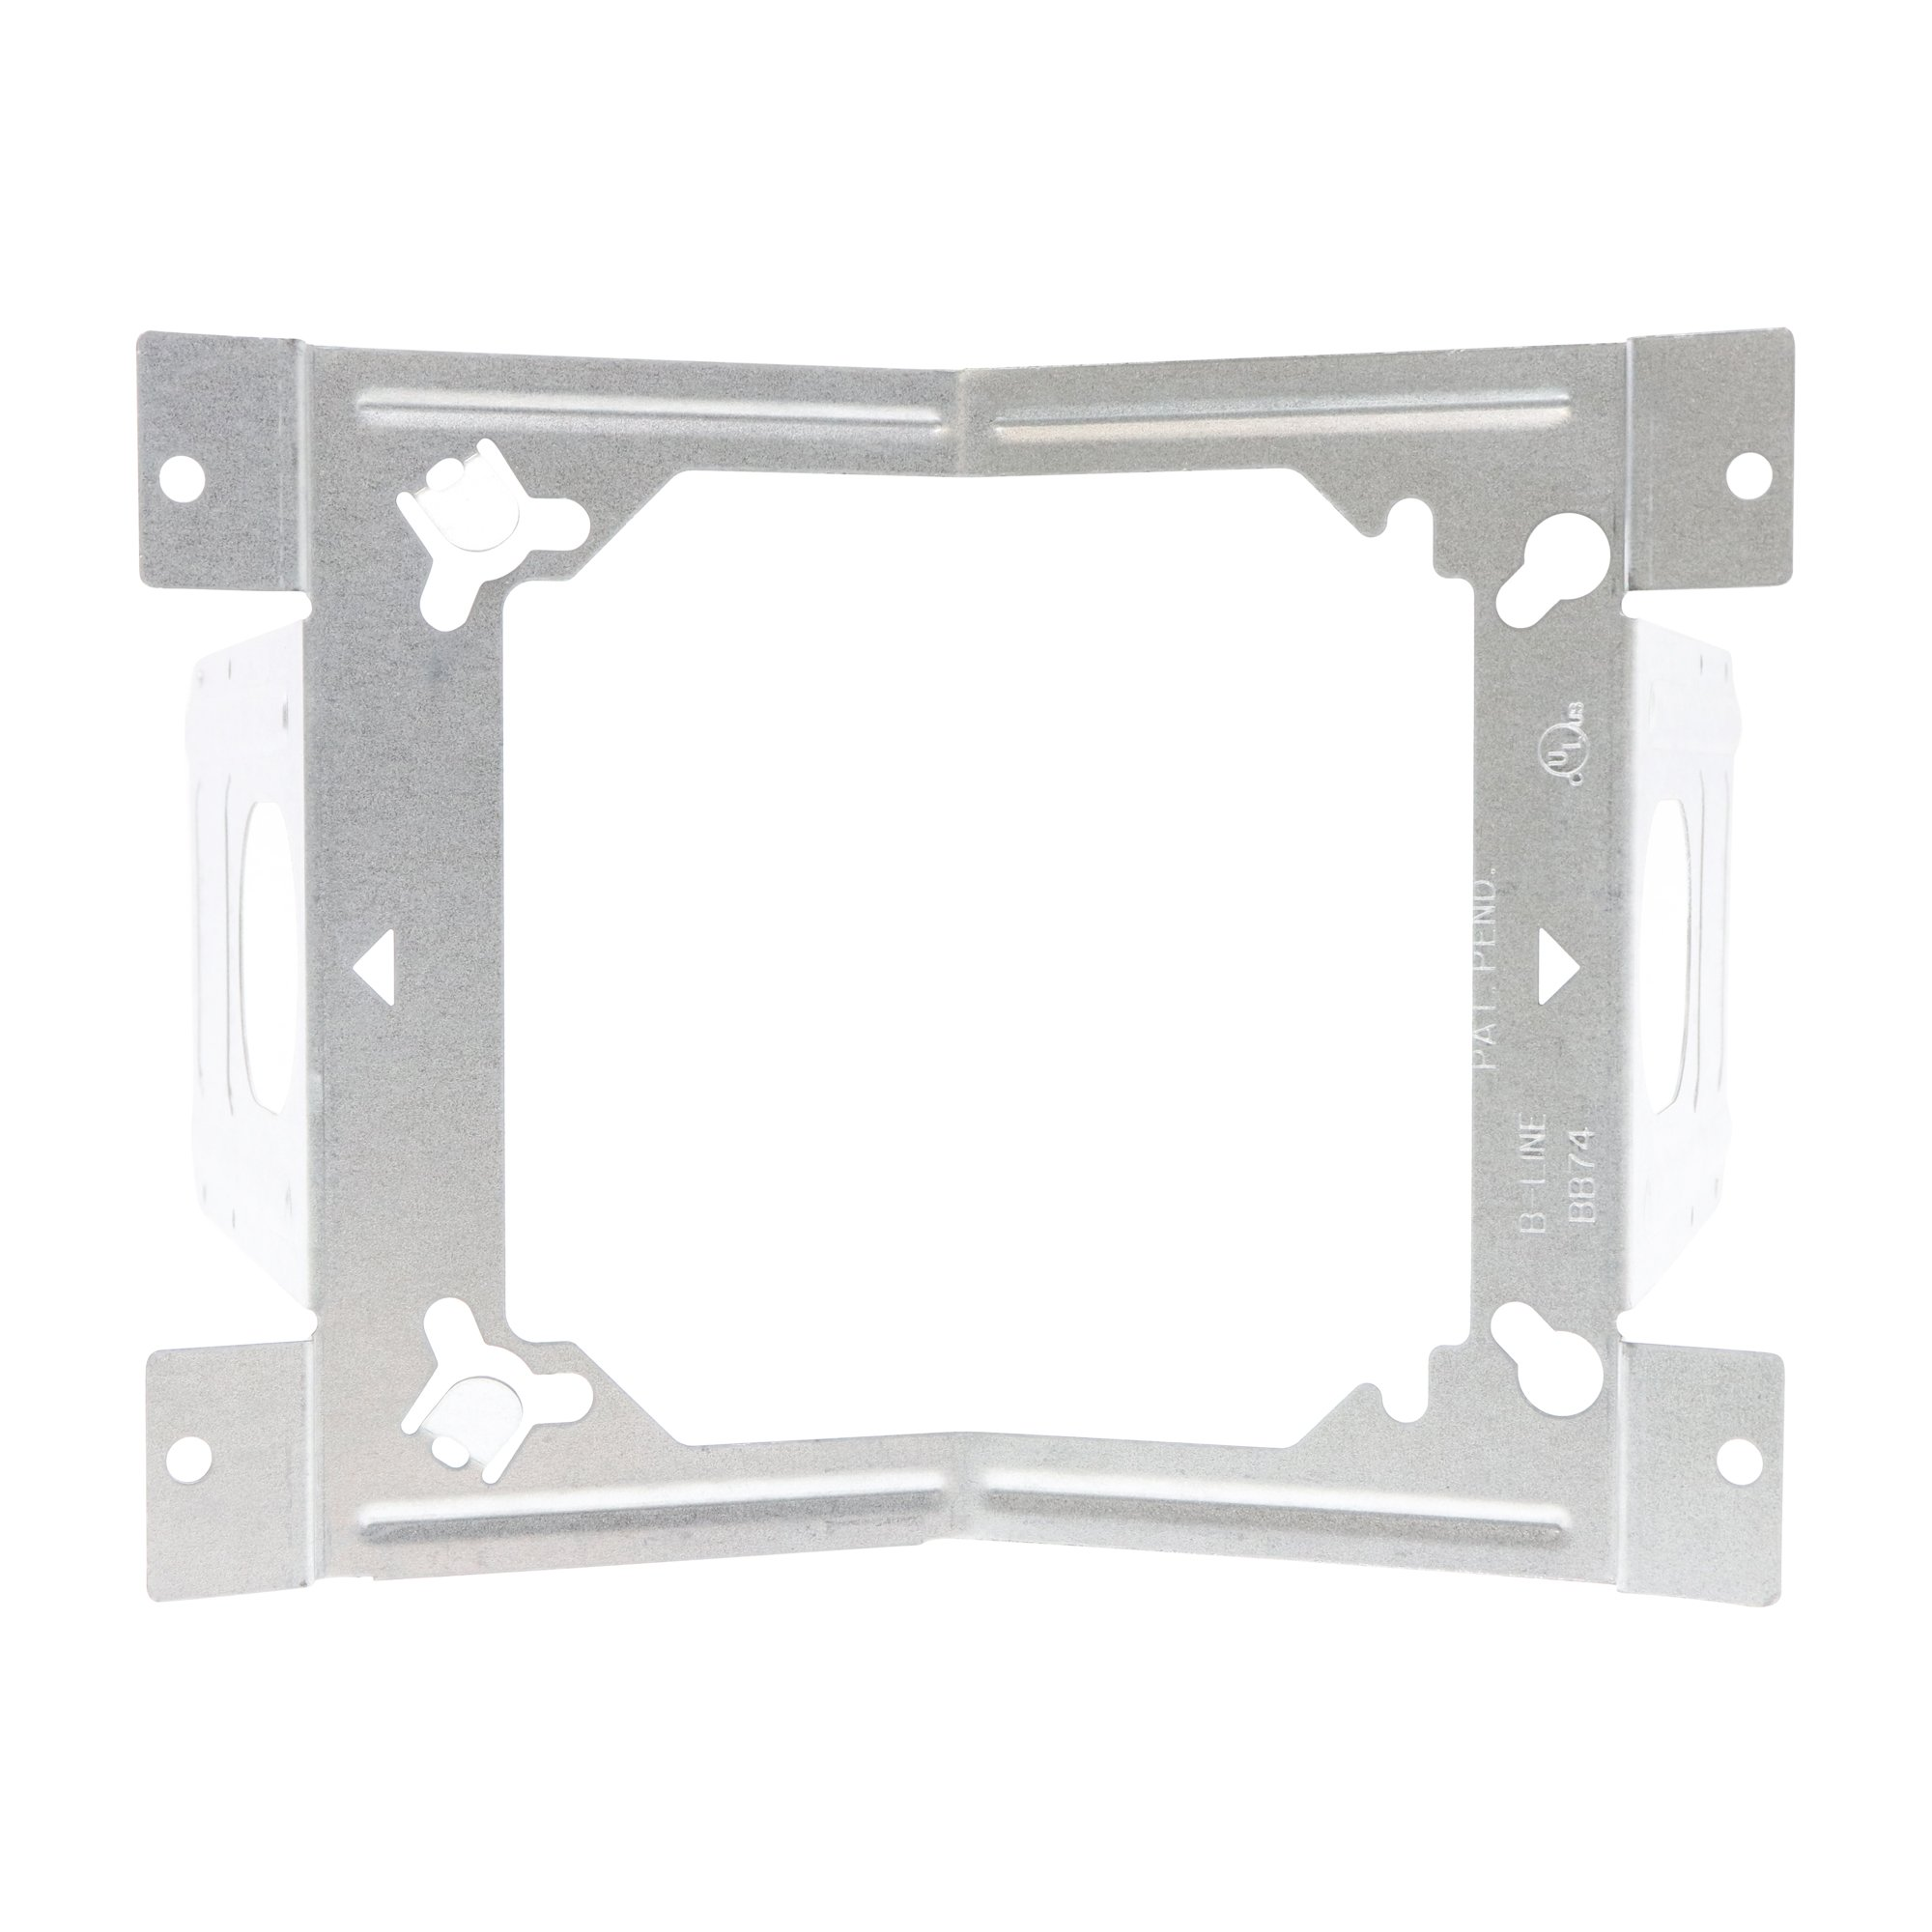 Cooper B-Line BB74 Double-Sided Device Box Support Bracket, w/Ears, (50-Pack)